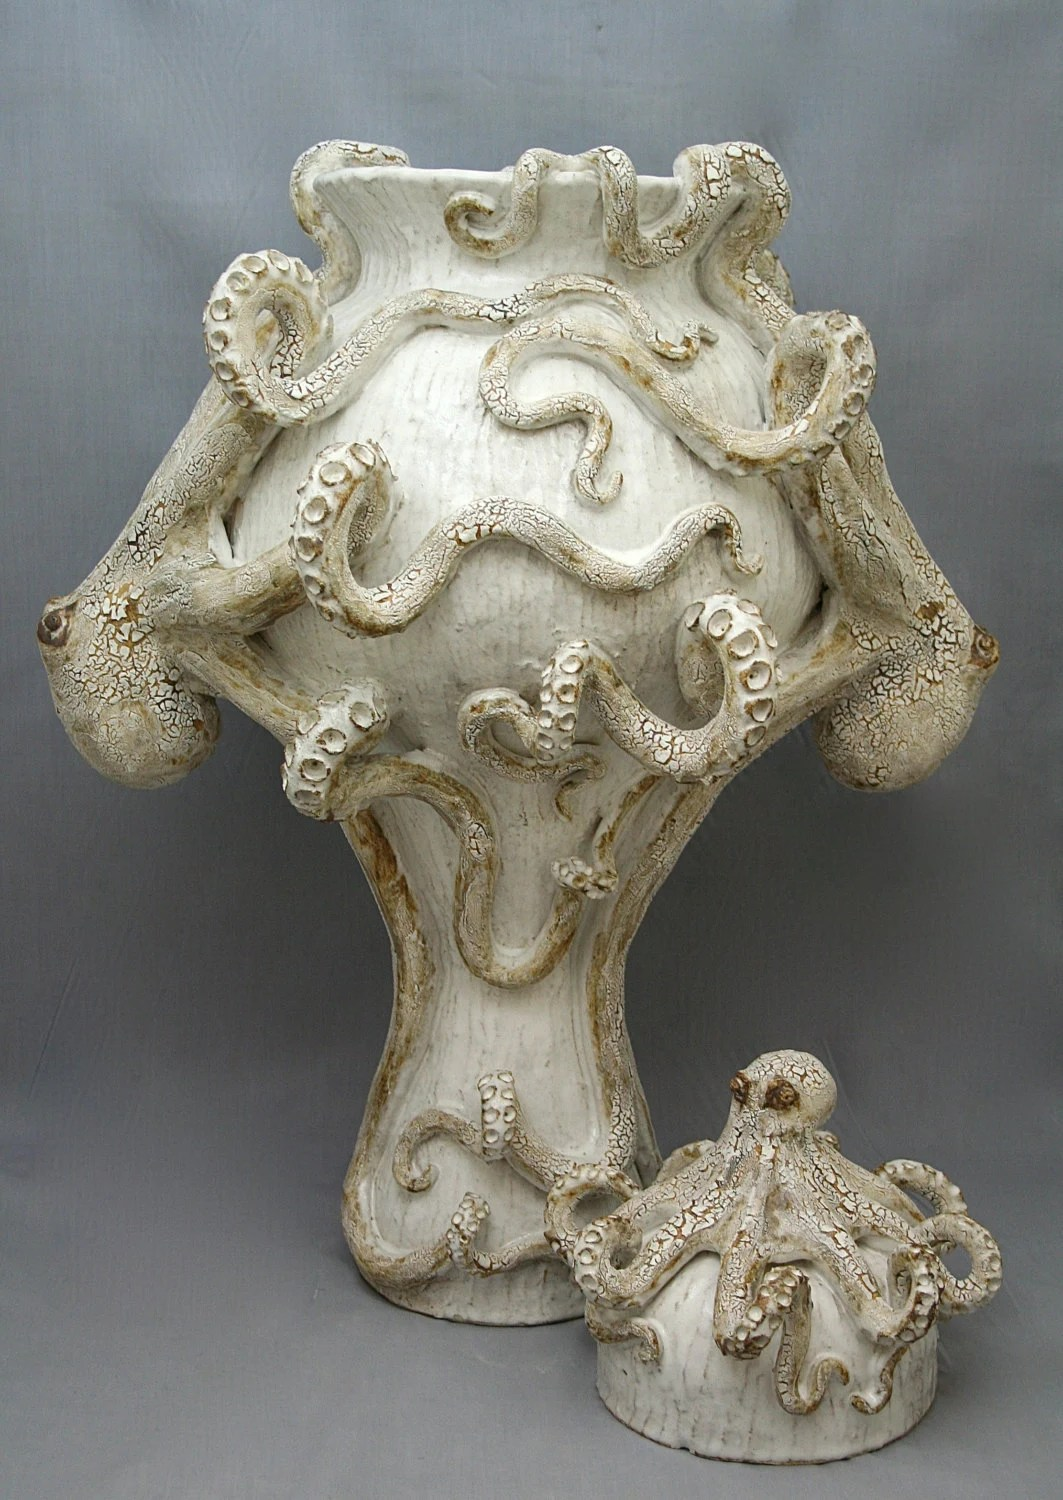 Ceramic Octopus Giant Ceramic Octopus Vase Urn By Shayne Greco Beautiful